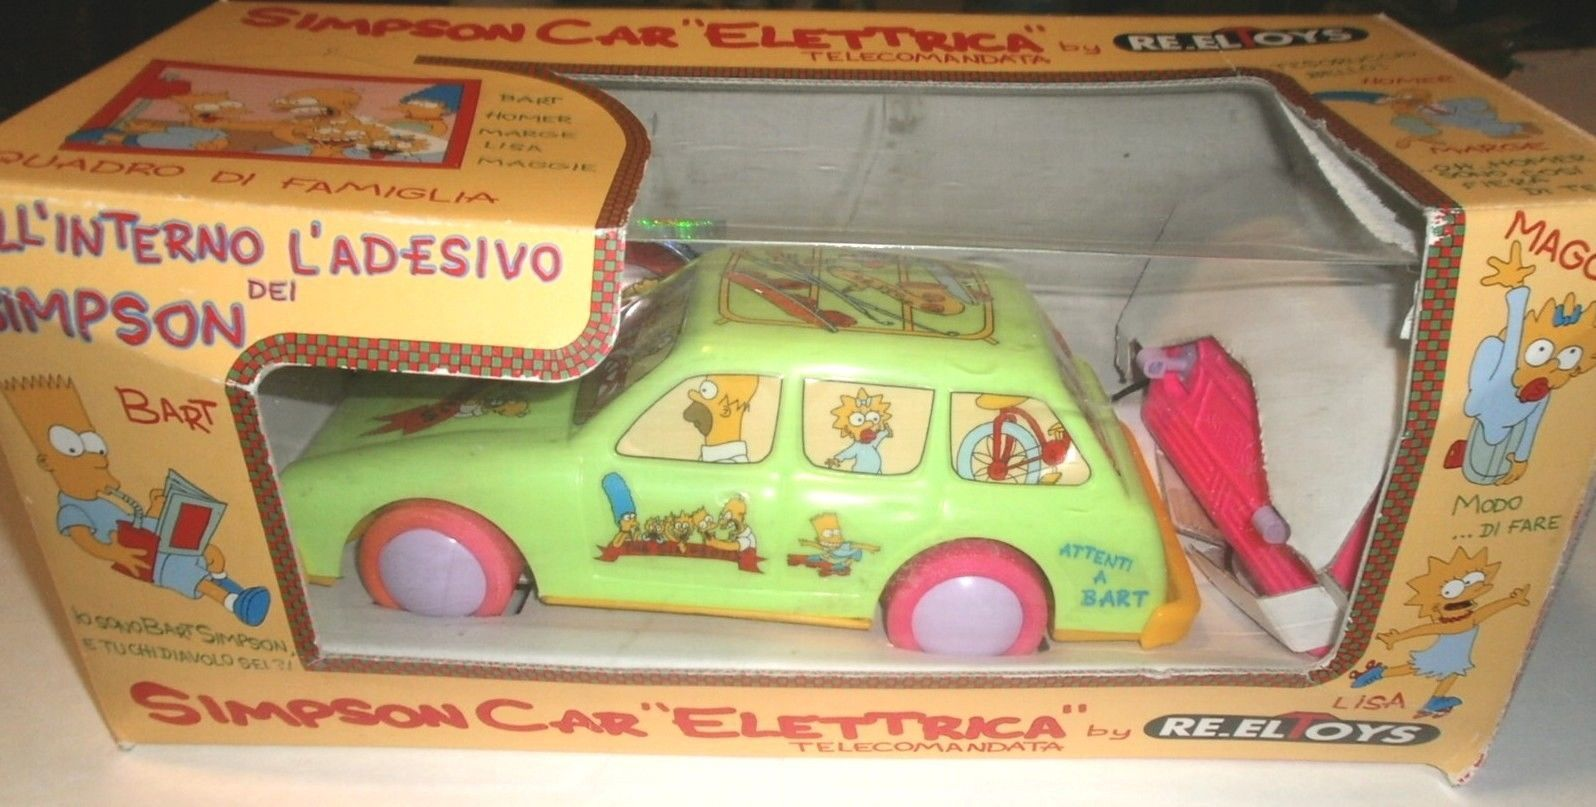 The Simpsons Electric Toy Rc Car Elettrica Re Eltoys Italy Rare Collectible Ebay